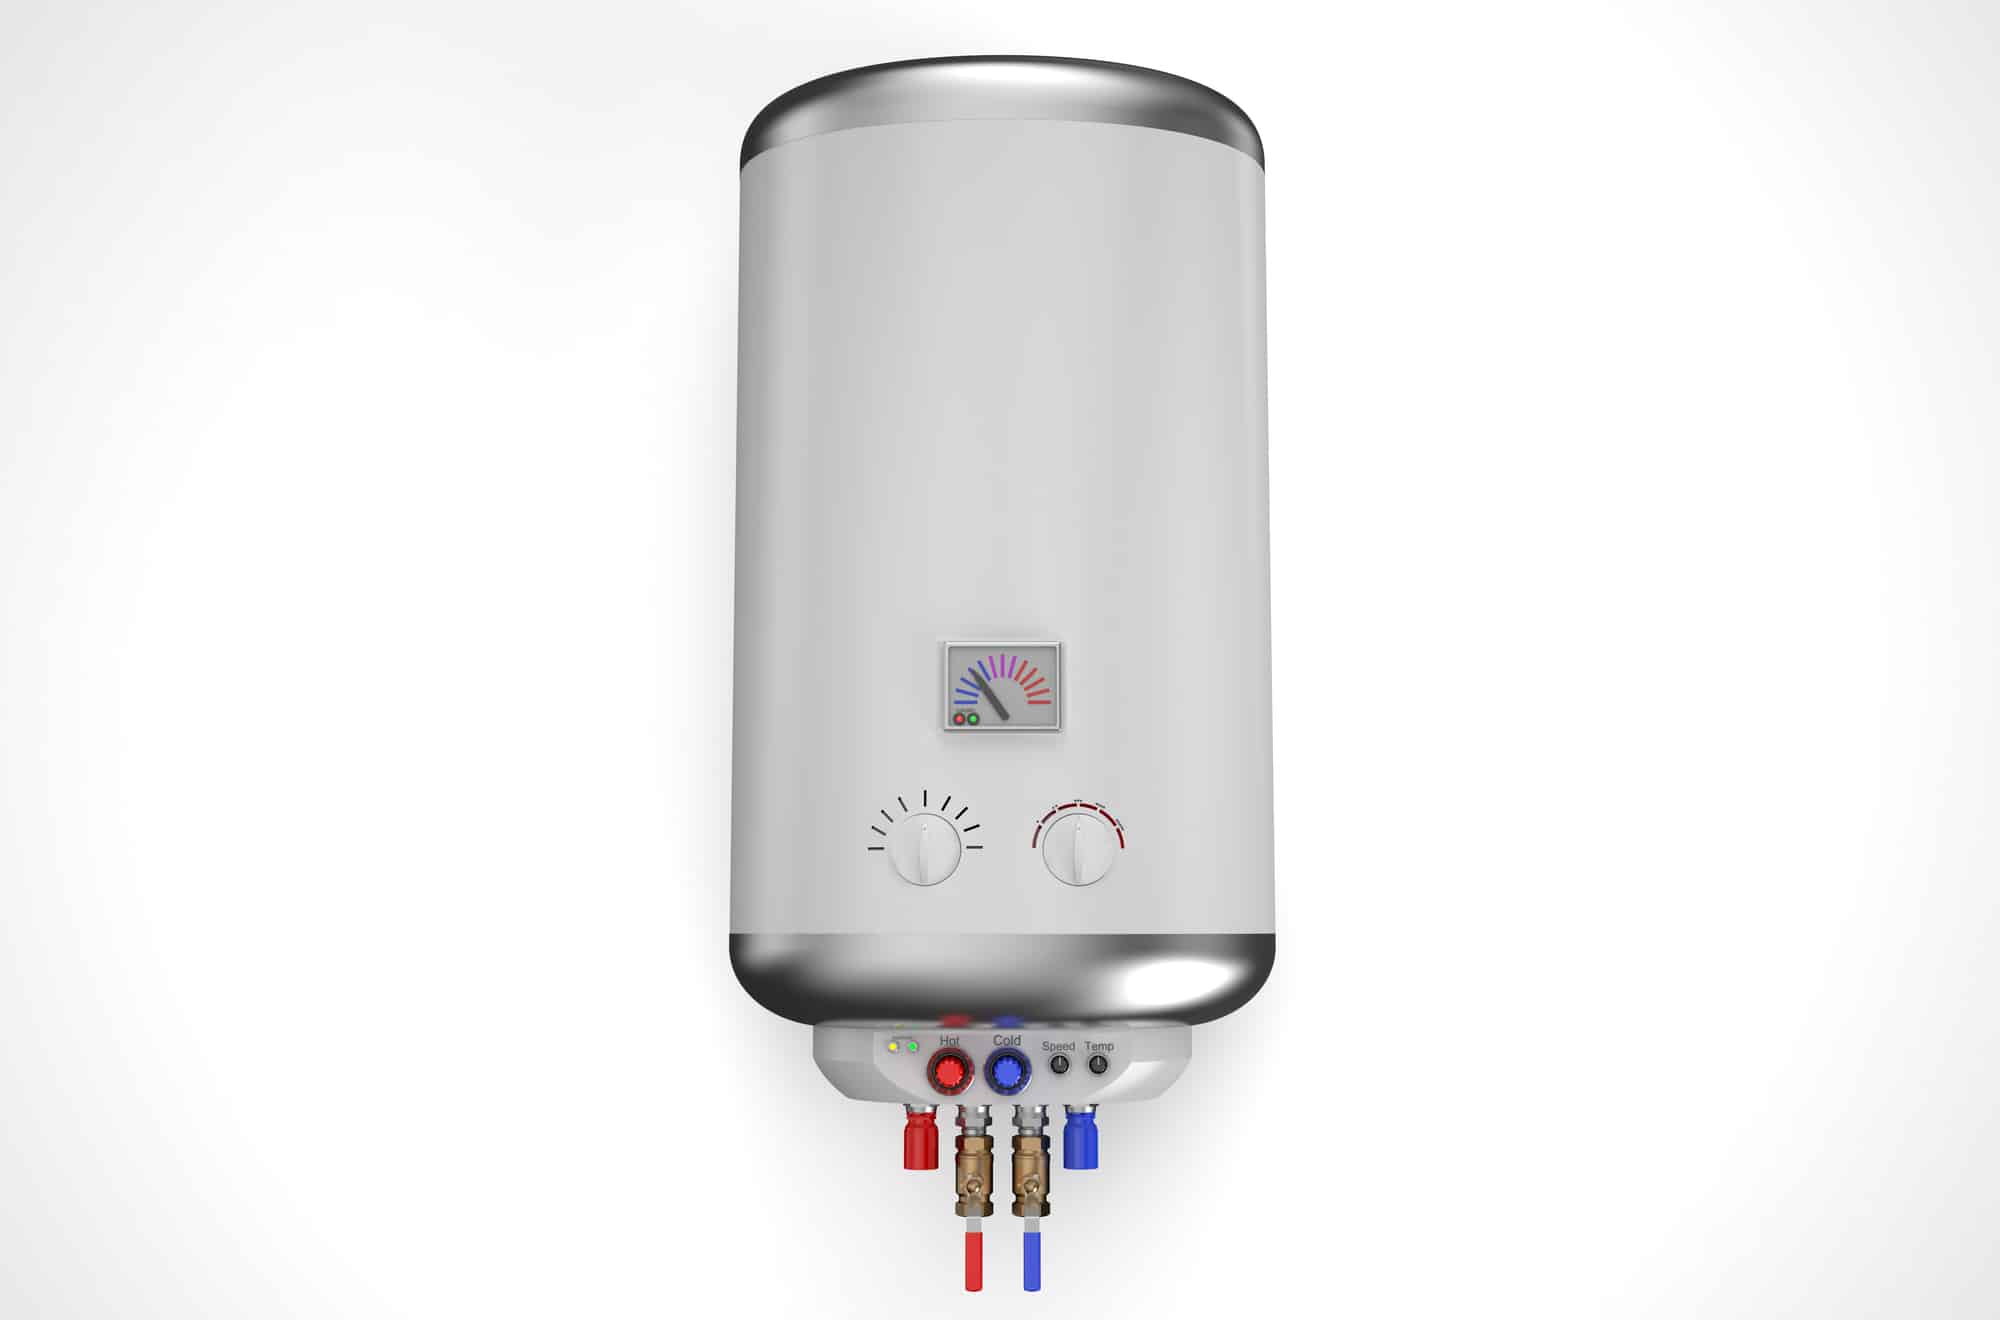 What Are Some Notable Aspects To Consider Before Buying a Tankless Water Heater?